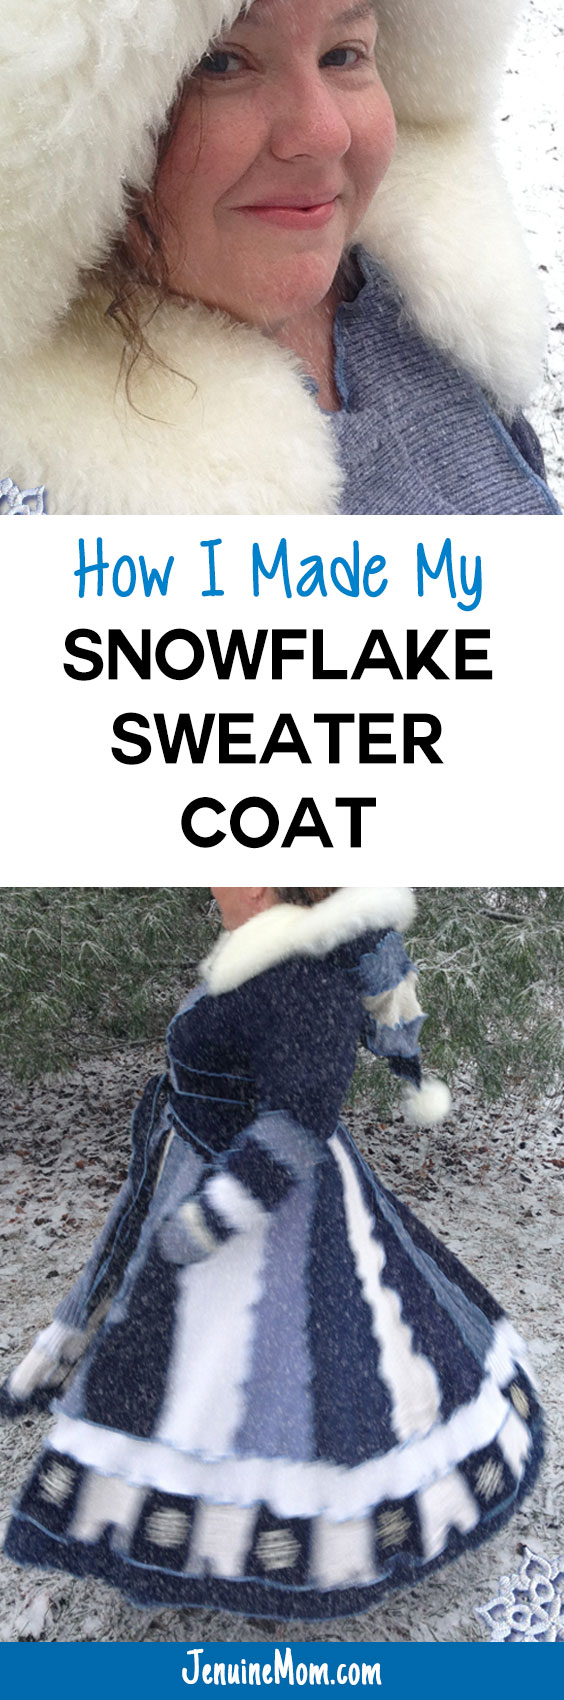 How I Made My Snowflake Sweater Coat from Upcycled Sweaters! | JenuineMom.com